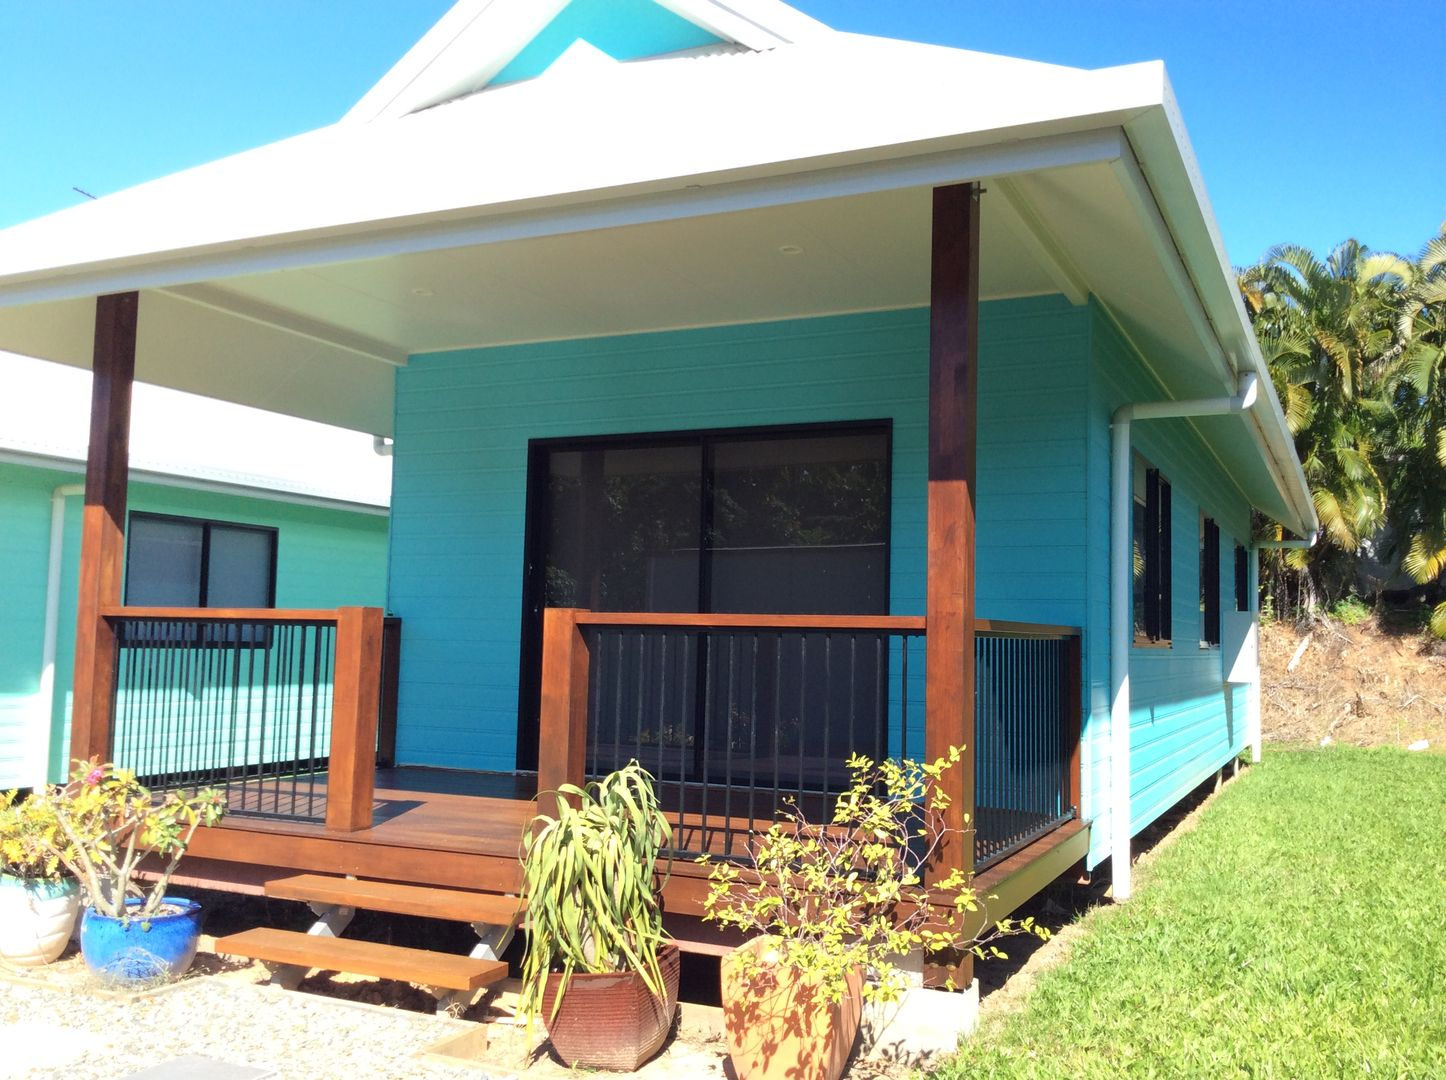 1/2042 TULLY/MISSION BEACH ROAD, Wongaling Beach QLD 4852, Image 0